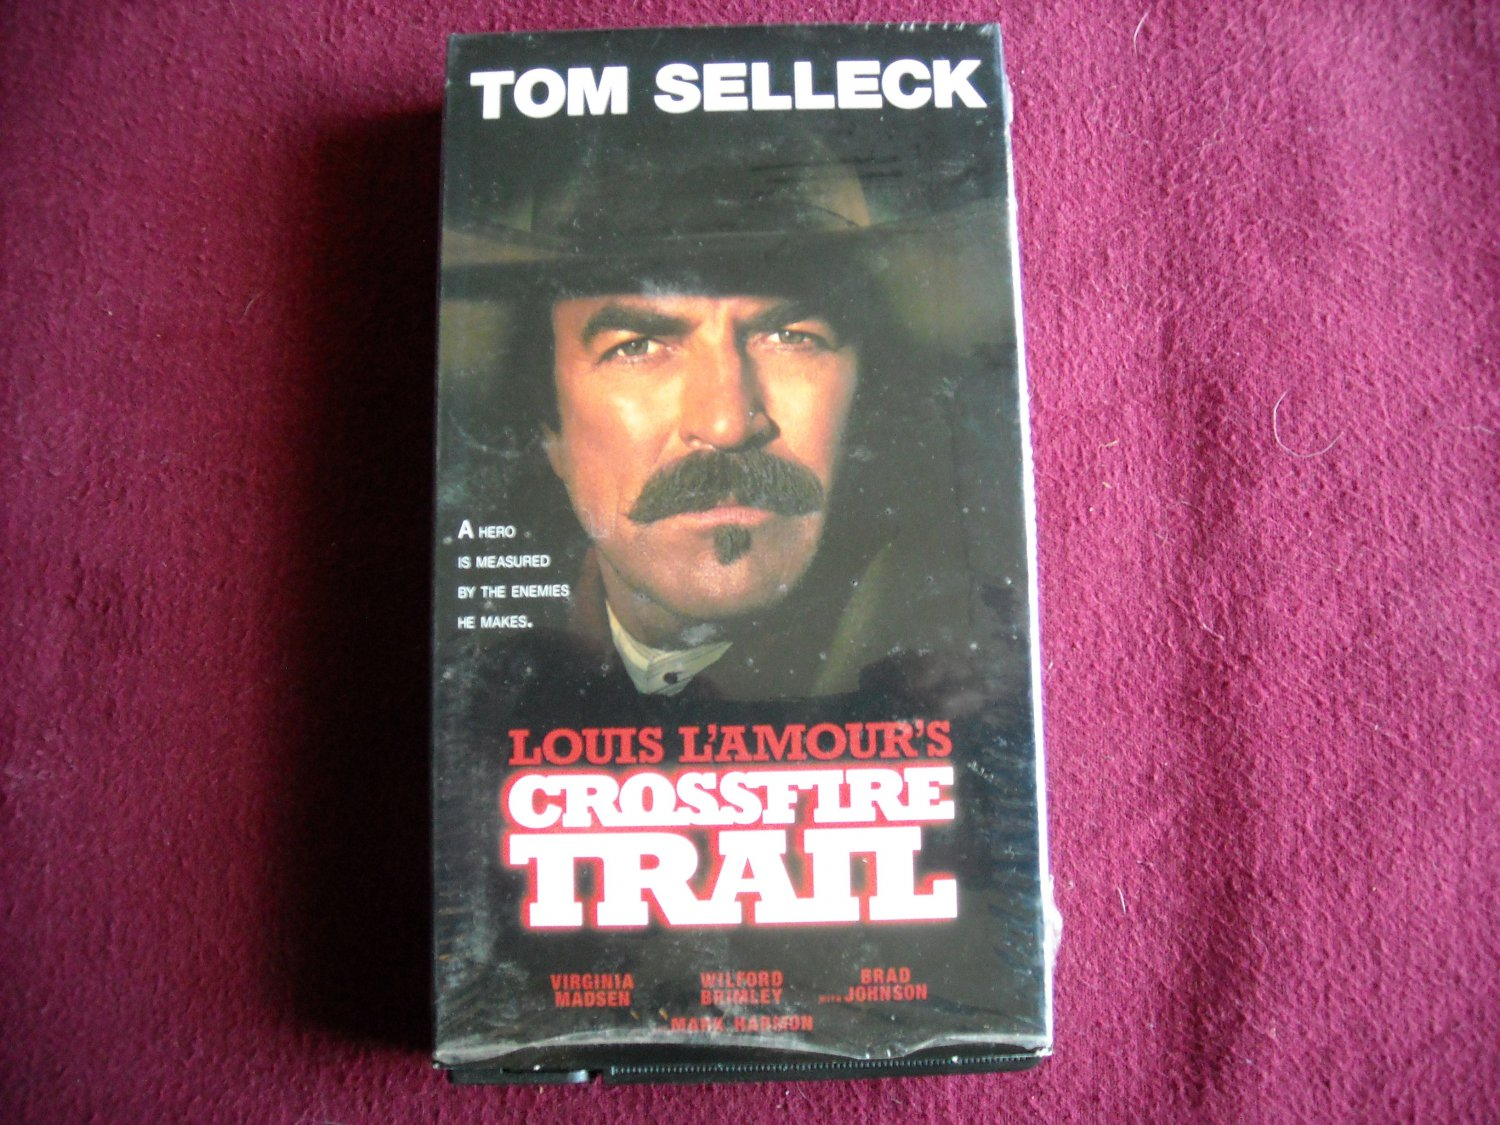 Crossfire Trail VHS Tom Selleck / Virginia Madsen / Mark Harmon (2001) NR